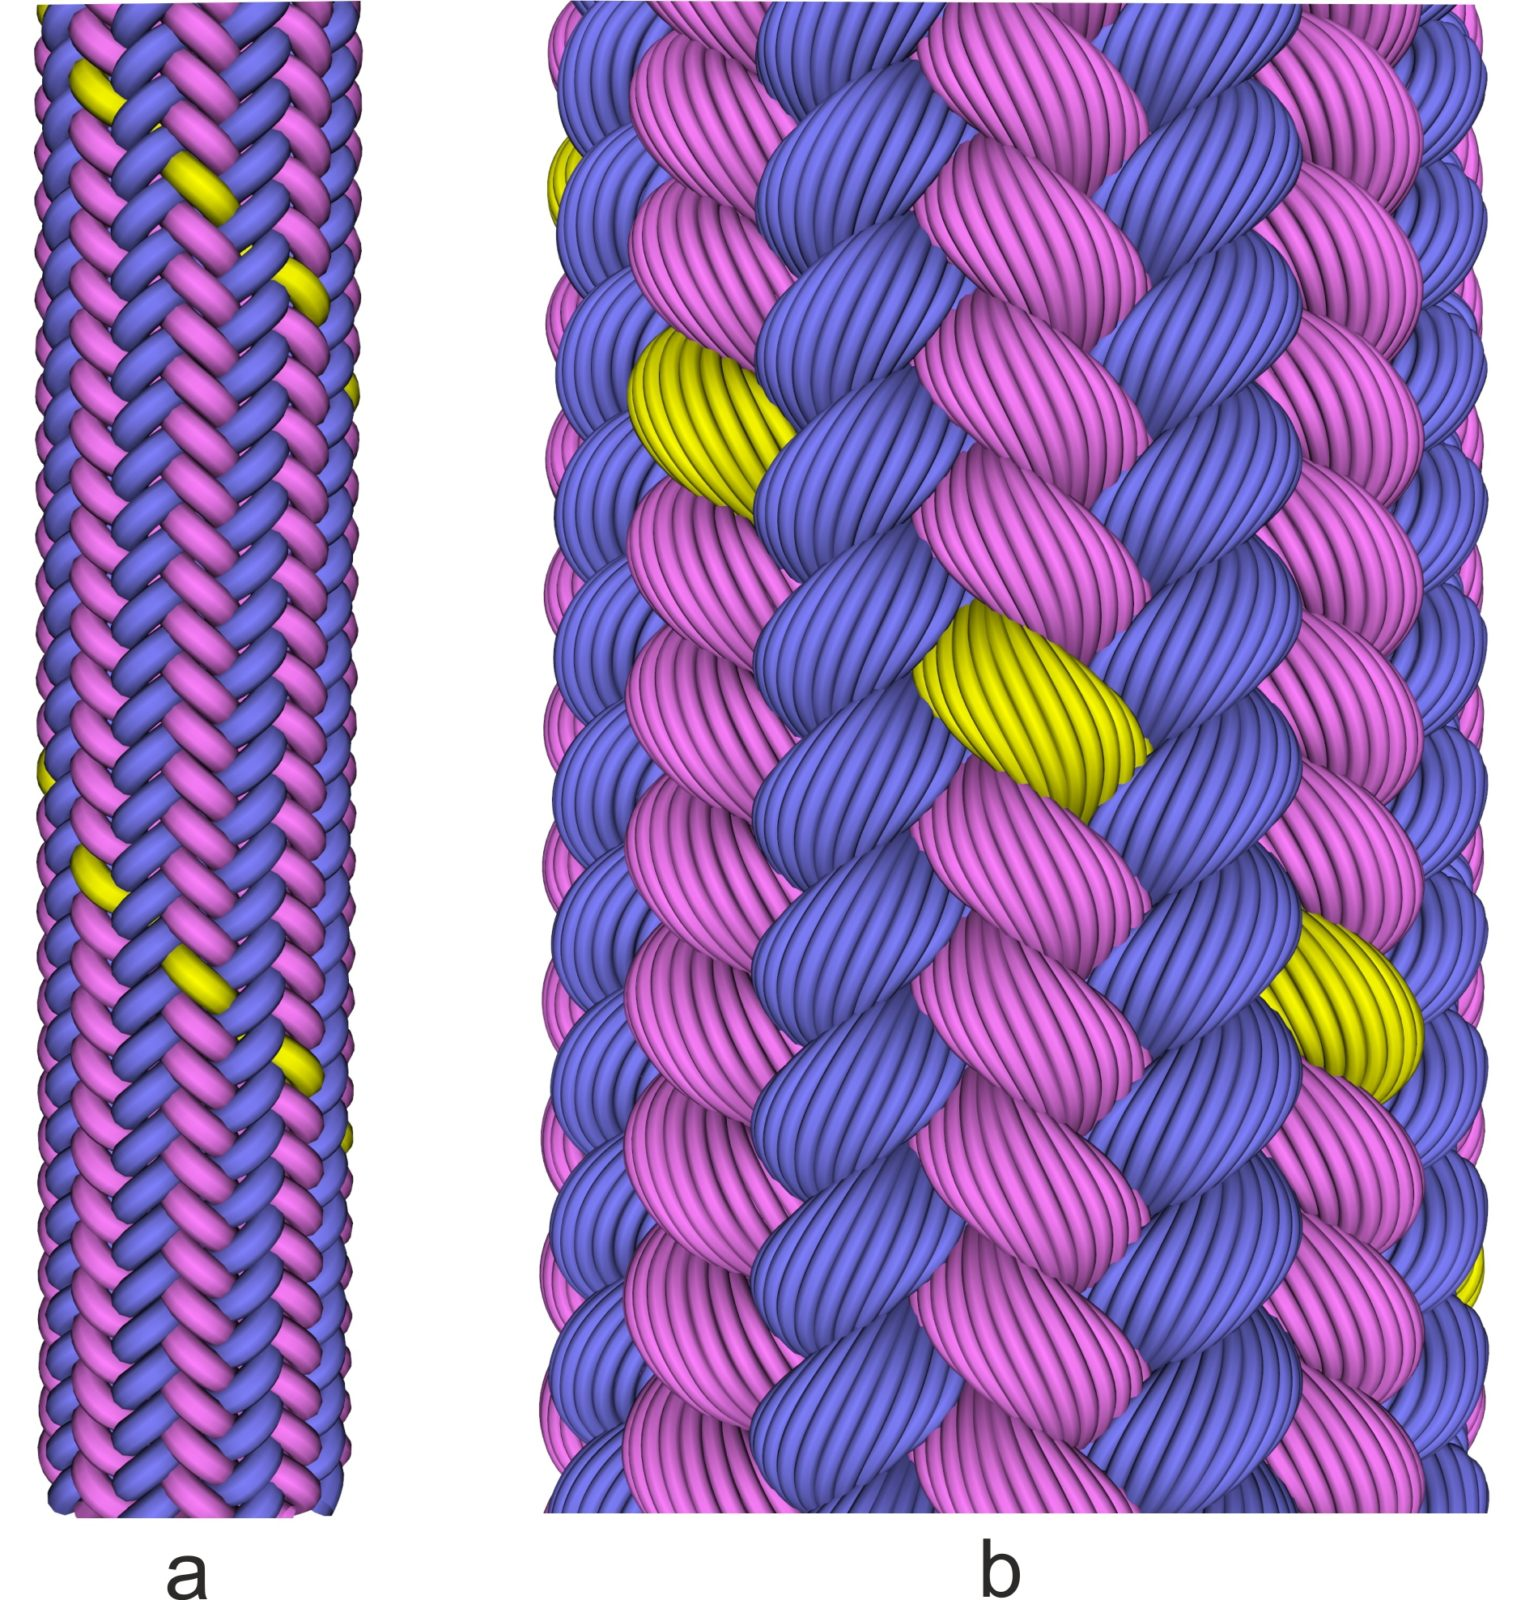 Figure 1Virtual rope with 32 strands. a) view of the macro level, b) close view with visualization of the filaments in the strands